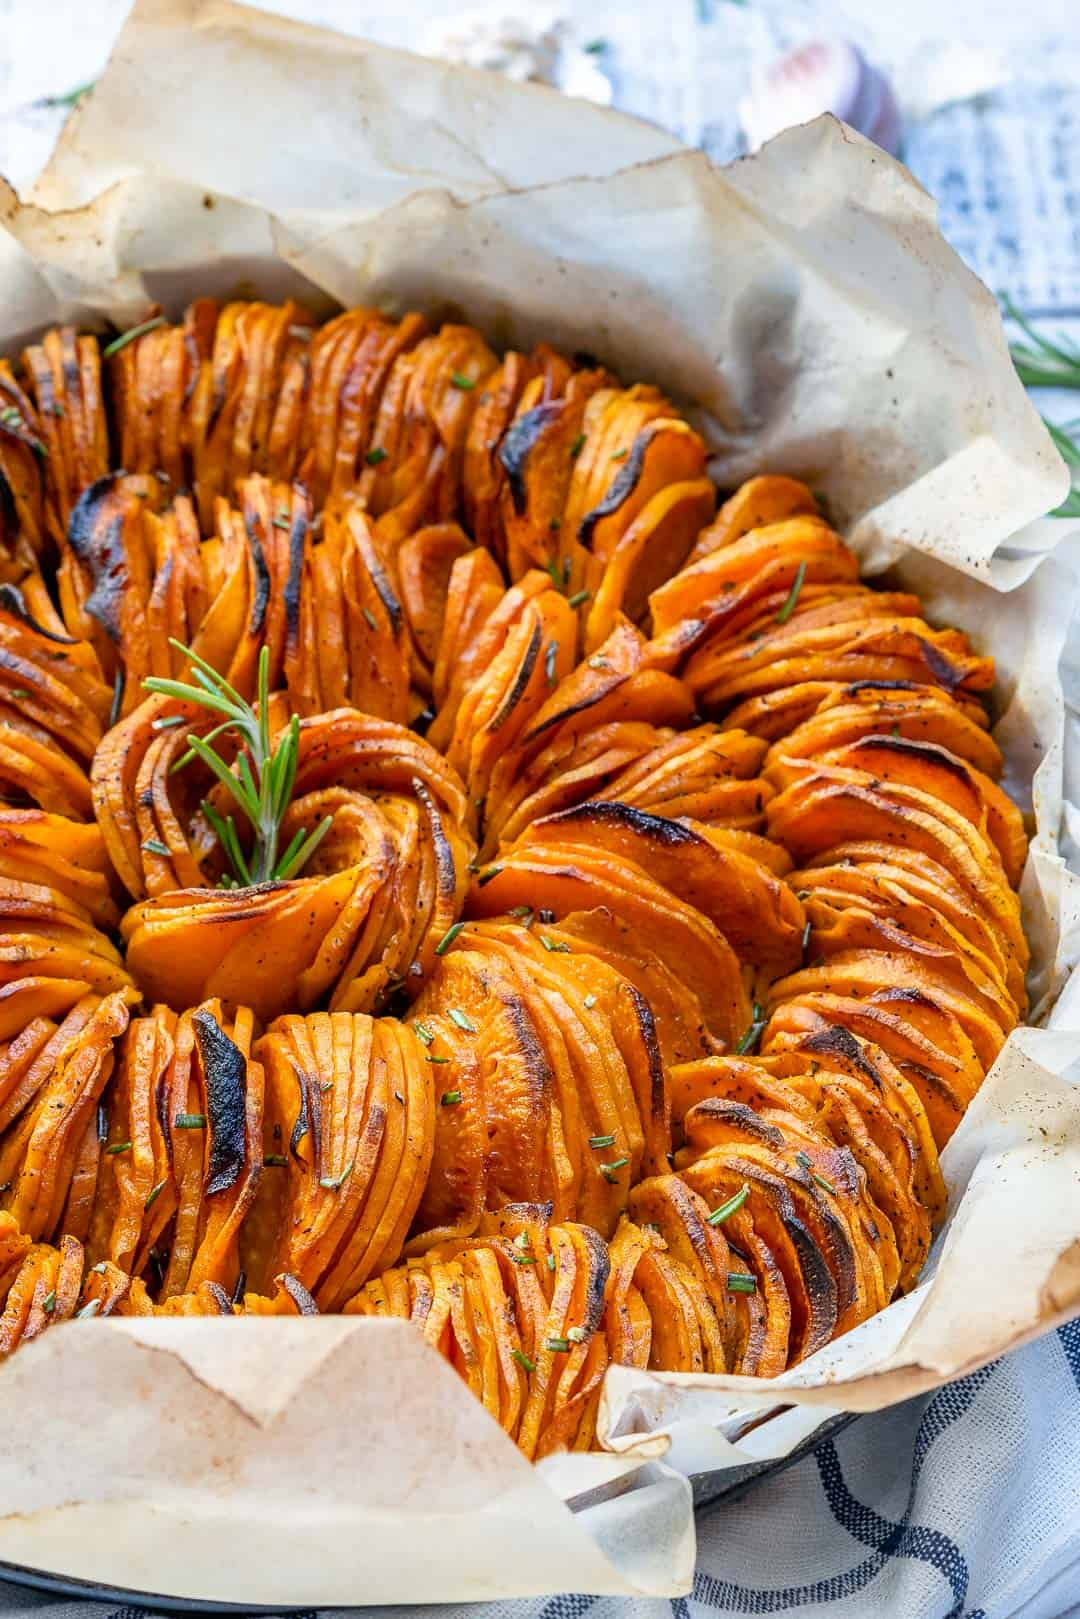 Healthy Roasted Smoked Sweet Potatoes Recipe | Thinly sliced and full of flavor| www.healthyfitnessmeals.com | Smoked sweet potatoes | Roasted sliced sweet potatoes| Roasted sweet potato recipe | #sweetpotatoes #roastedsweetpotatoes #healthyrecipe.